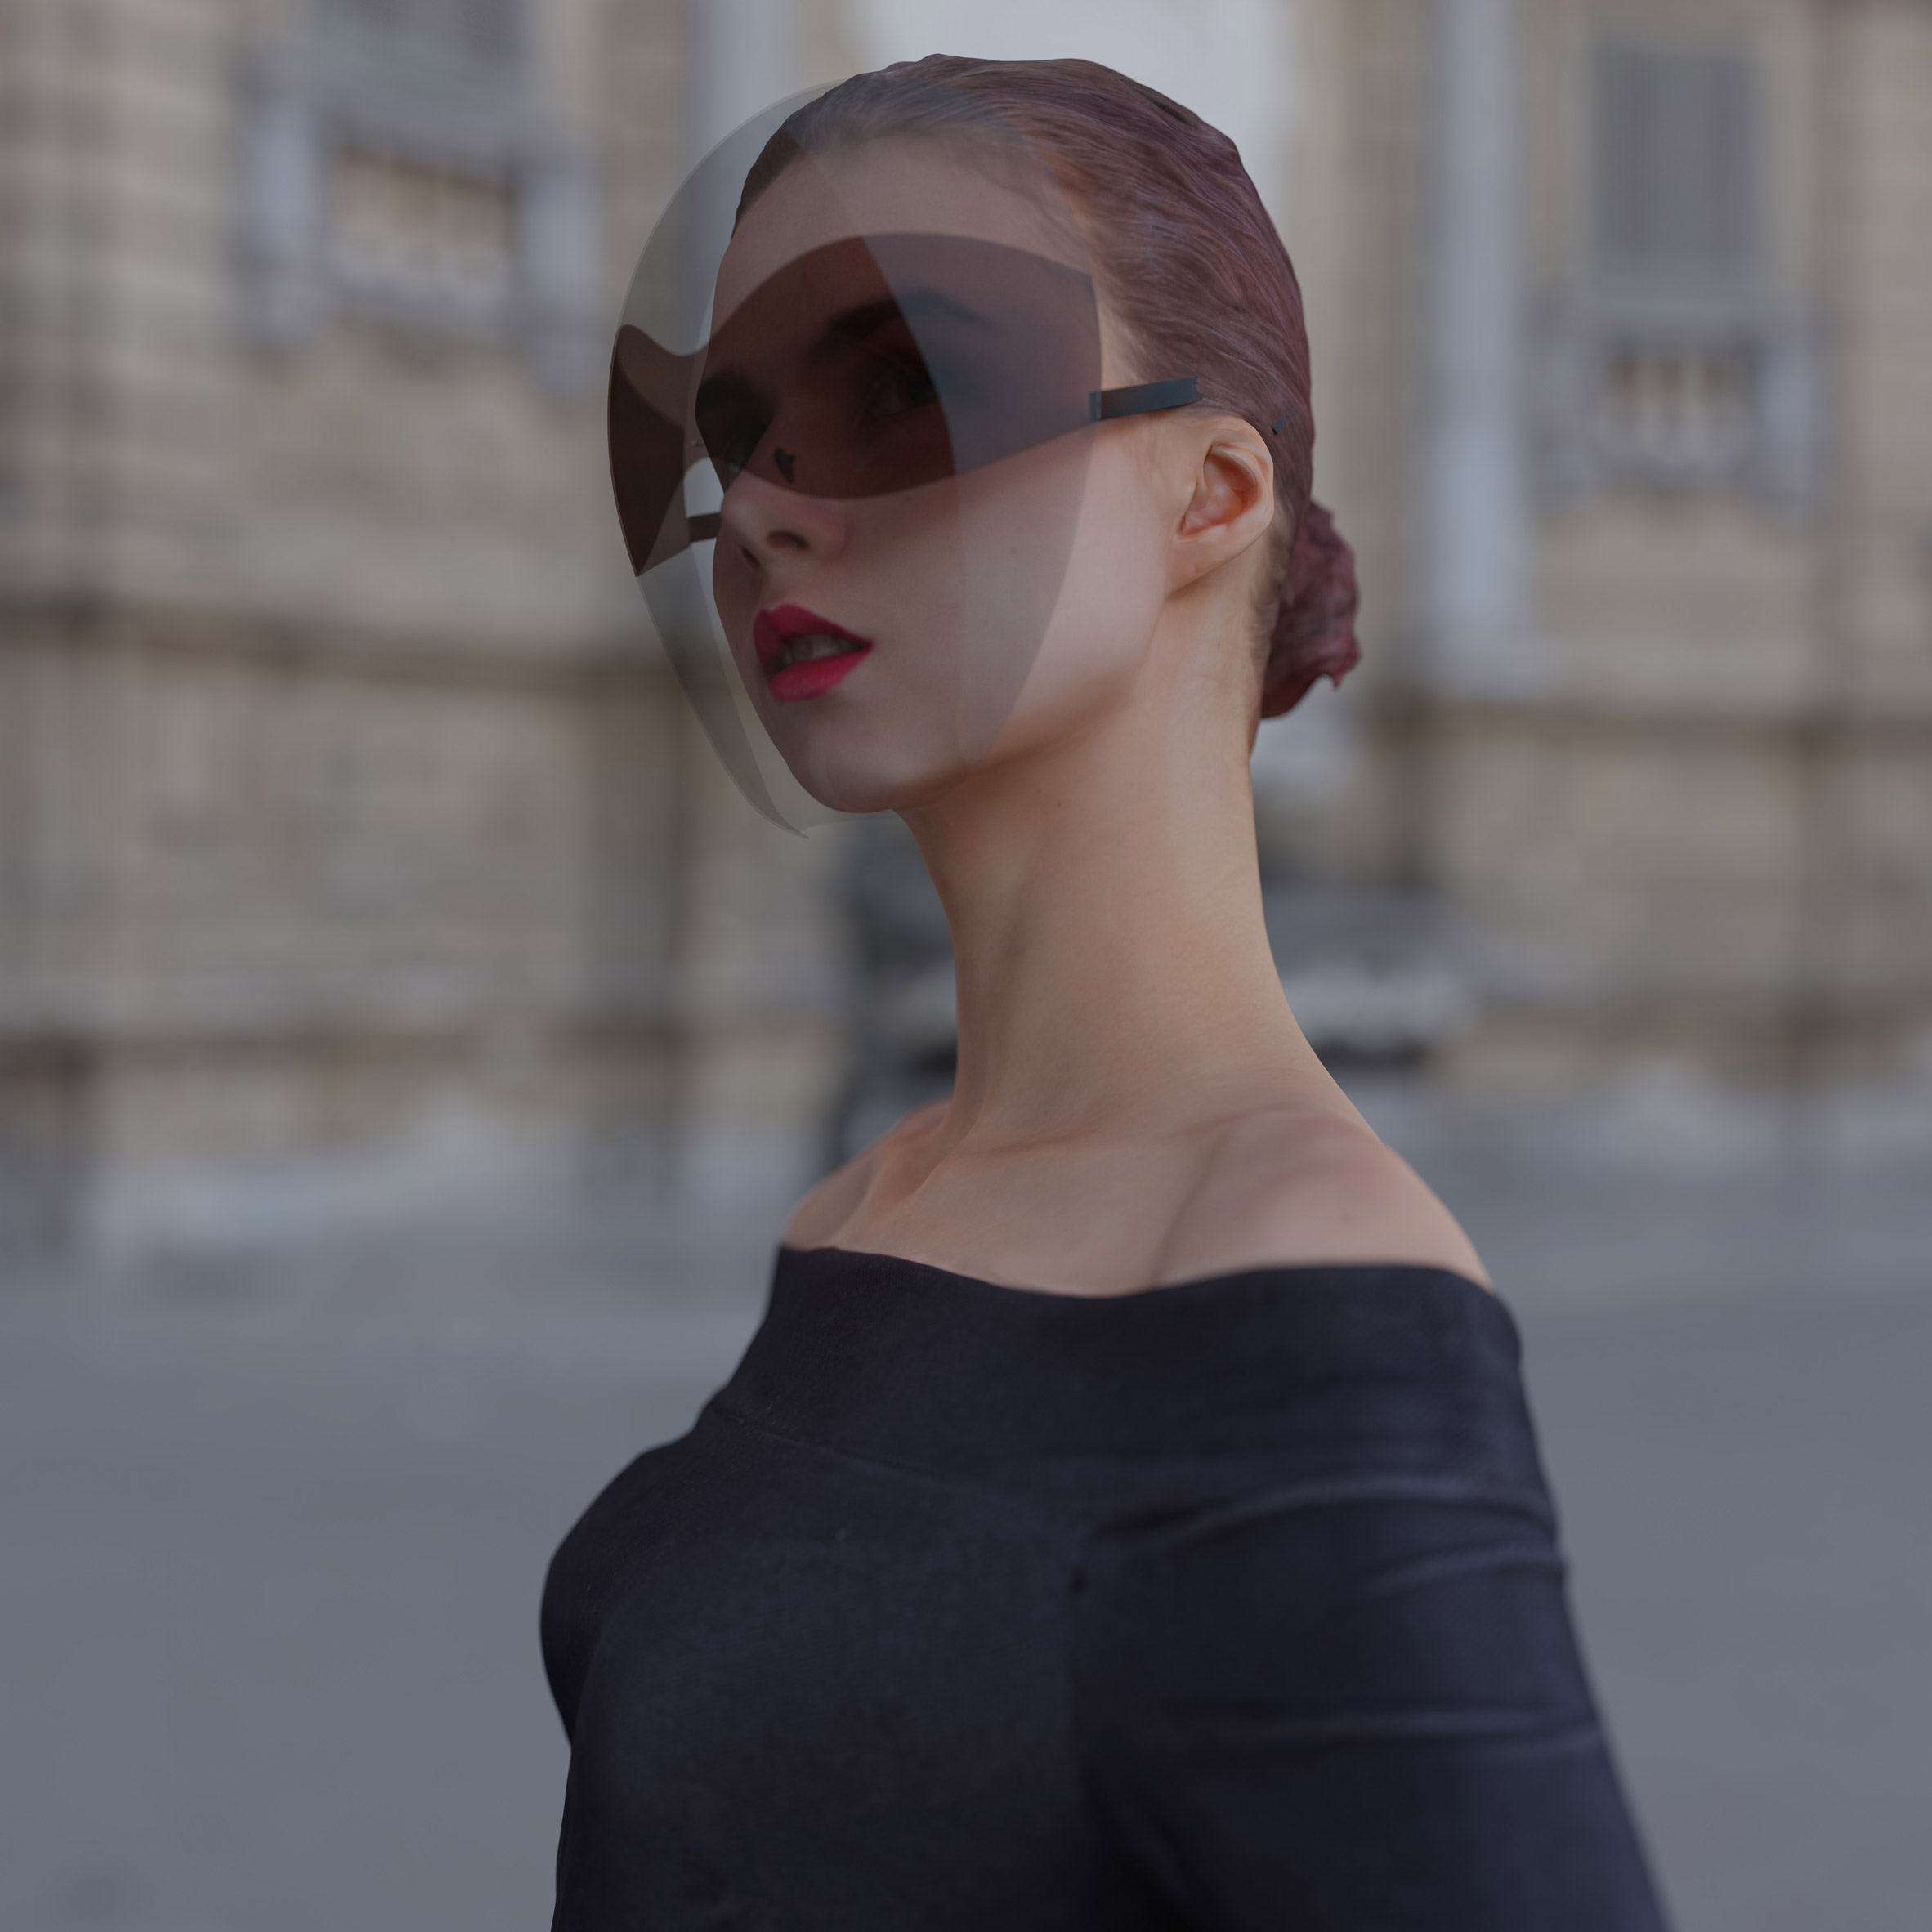 Joe Doucet Designs Face Shield To Be A Fashion Accessory